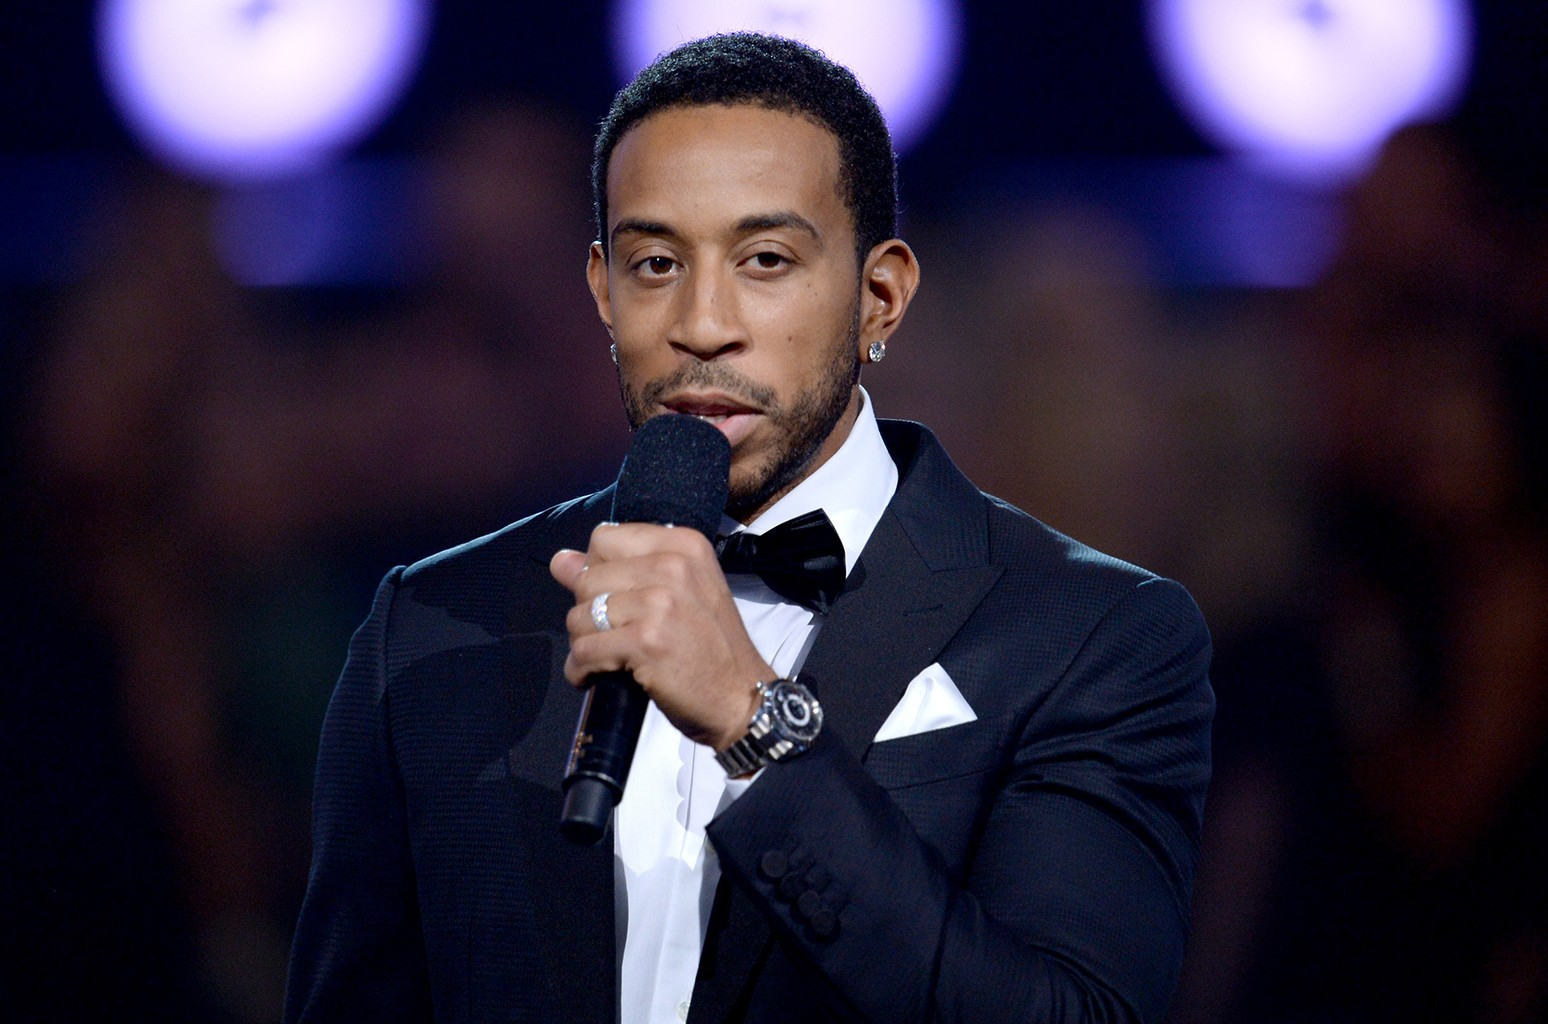 Ludacris speaks onstage during the 2016 Billboard Music Awards at T-Mobile Arena on May 22, 2016 in Las Vegas.